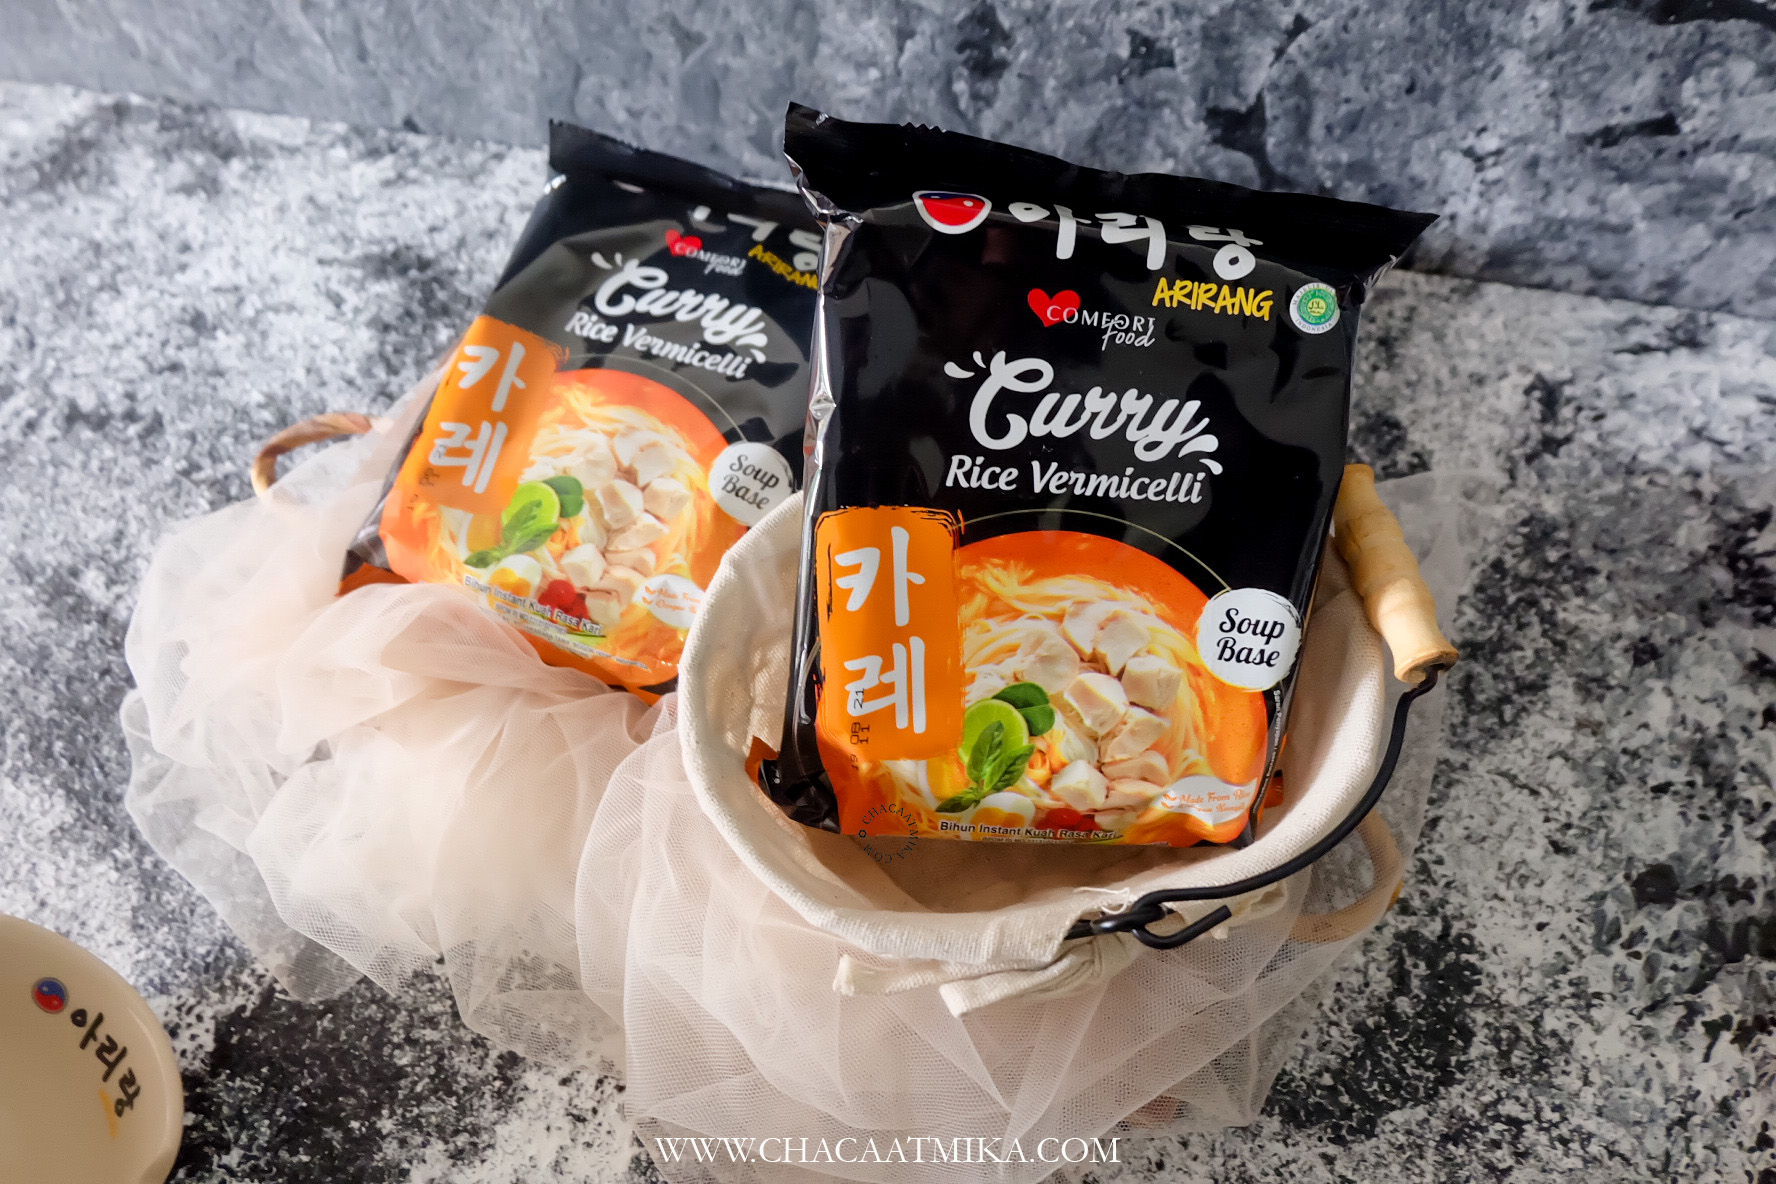 Review Arirang Curry Rice Vermicelli